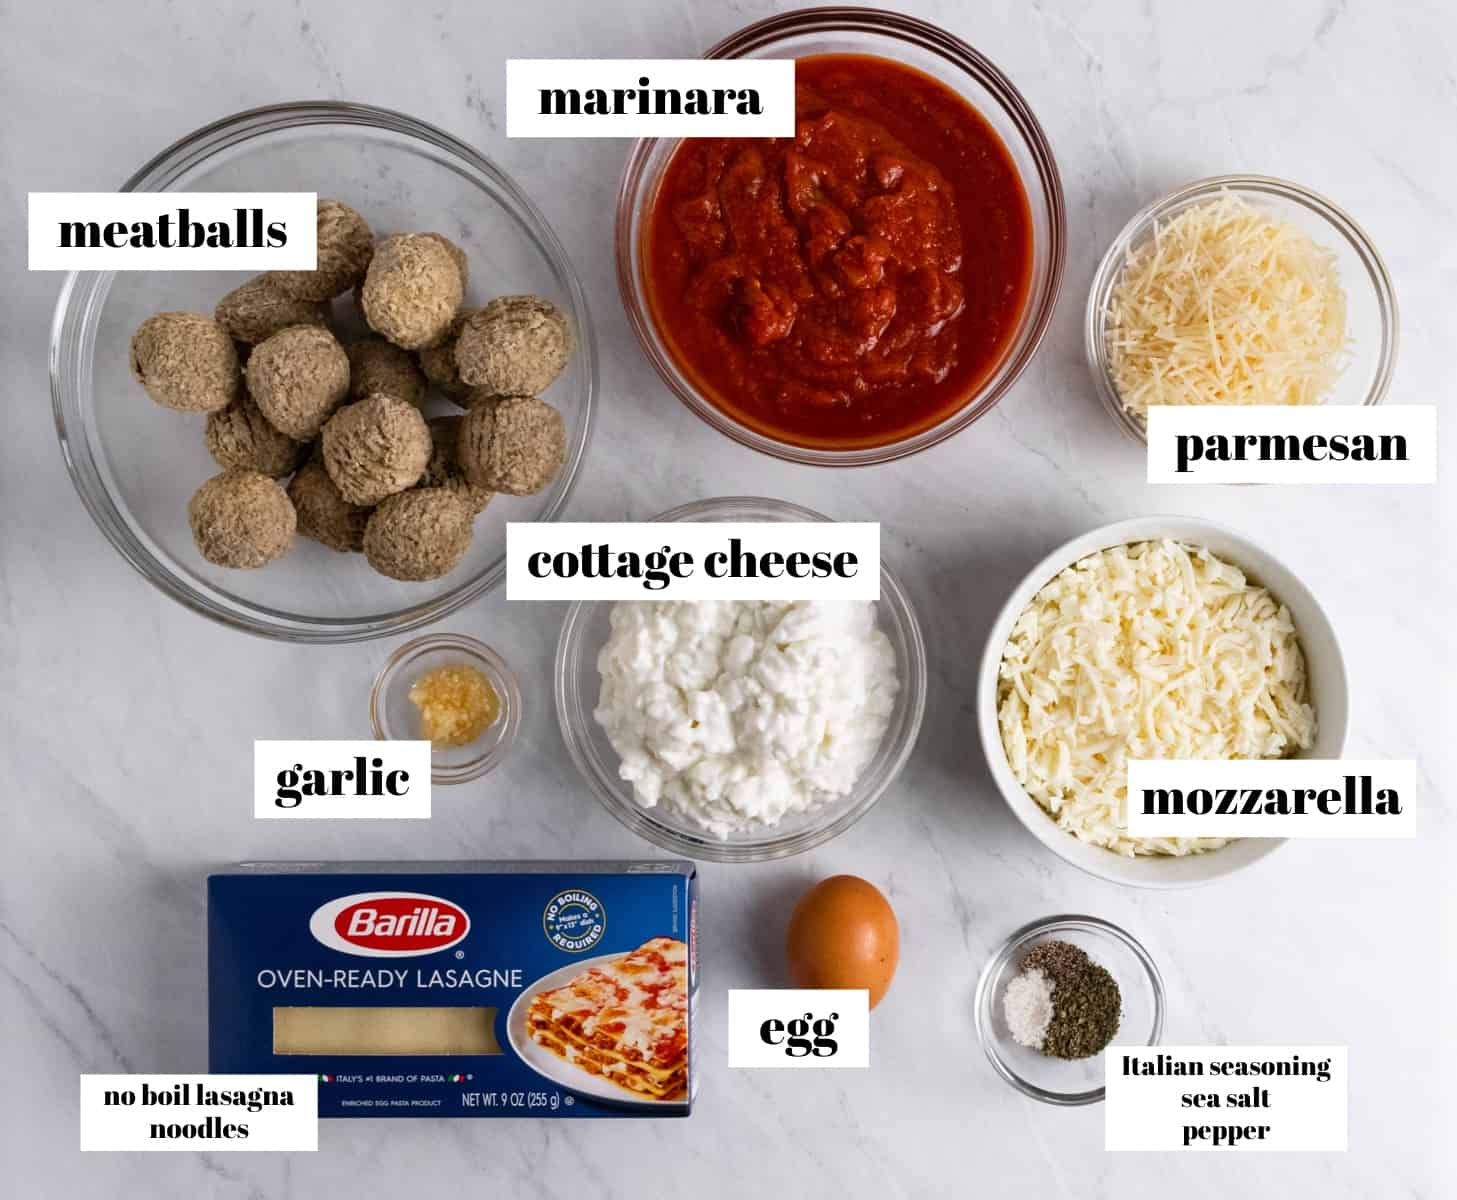 Lasagna ingredients labeled on counter including cheese, noodles, meatballs and more.